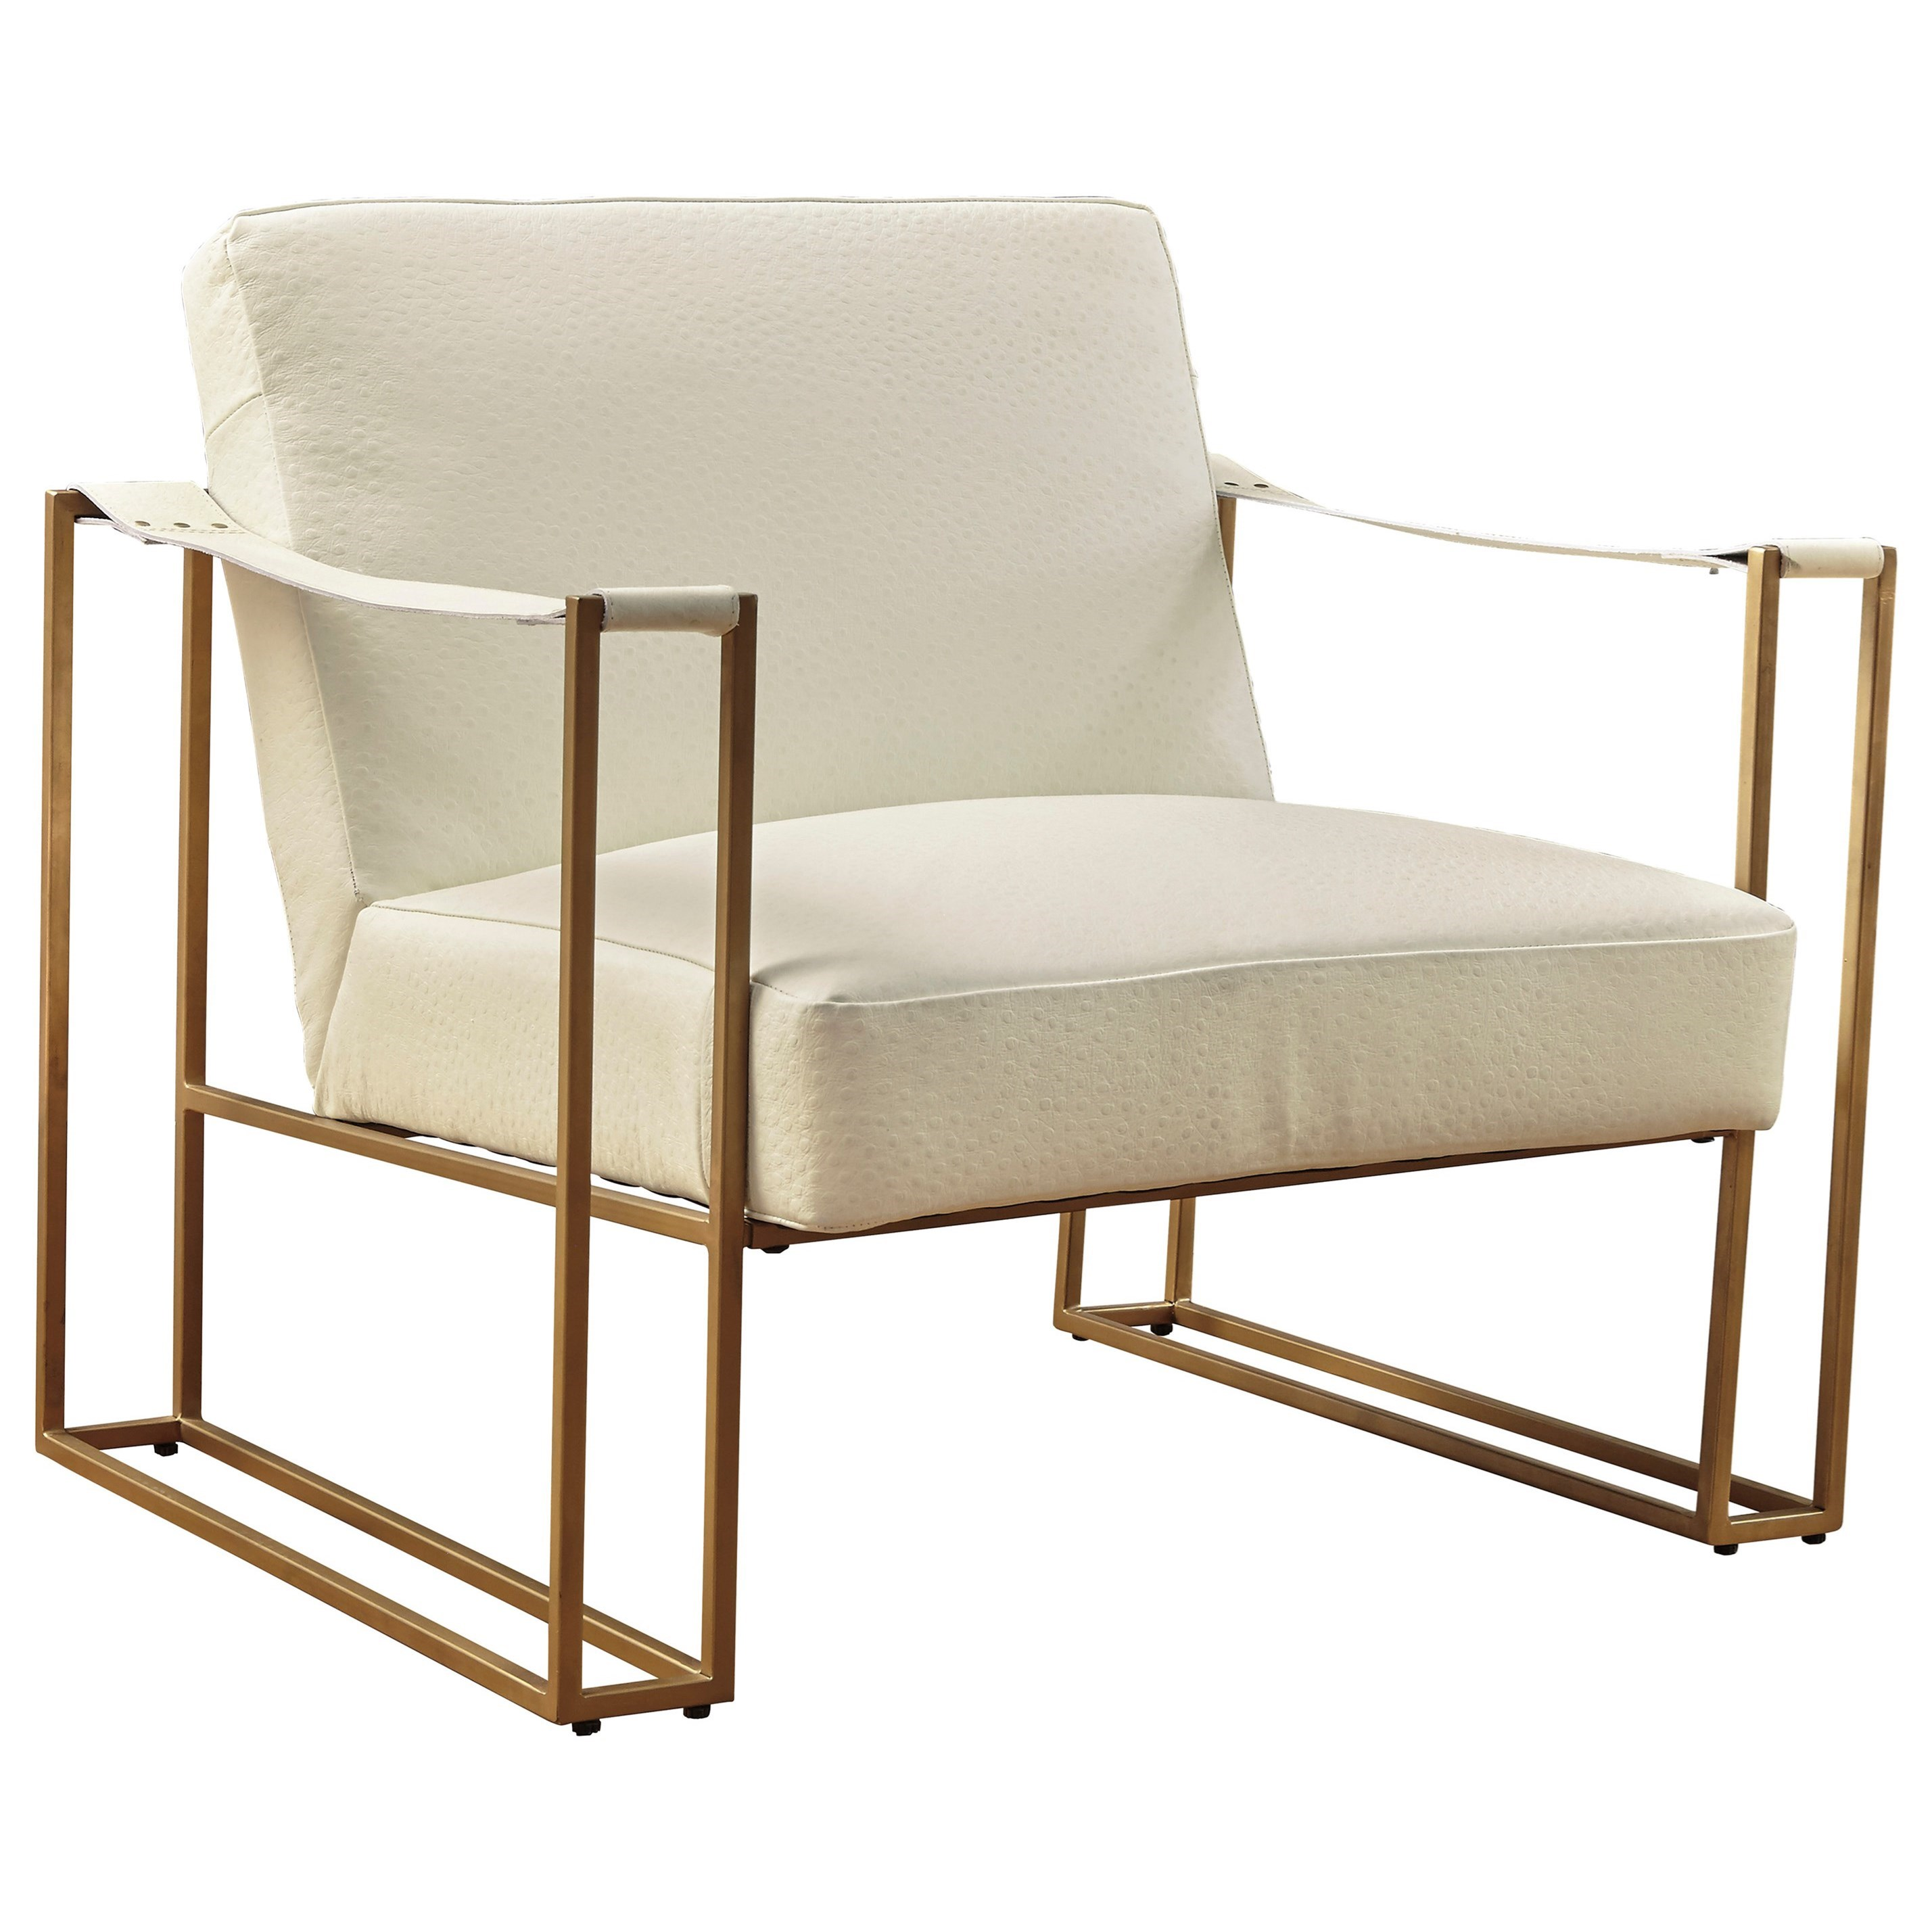 Kleemore Accent Chair by Ashley (Signature Design) at Johnny Janosik